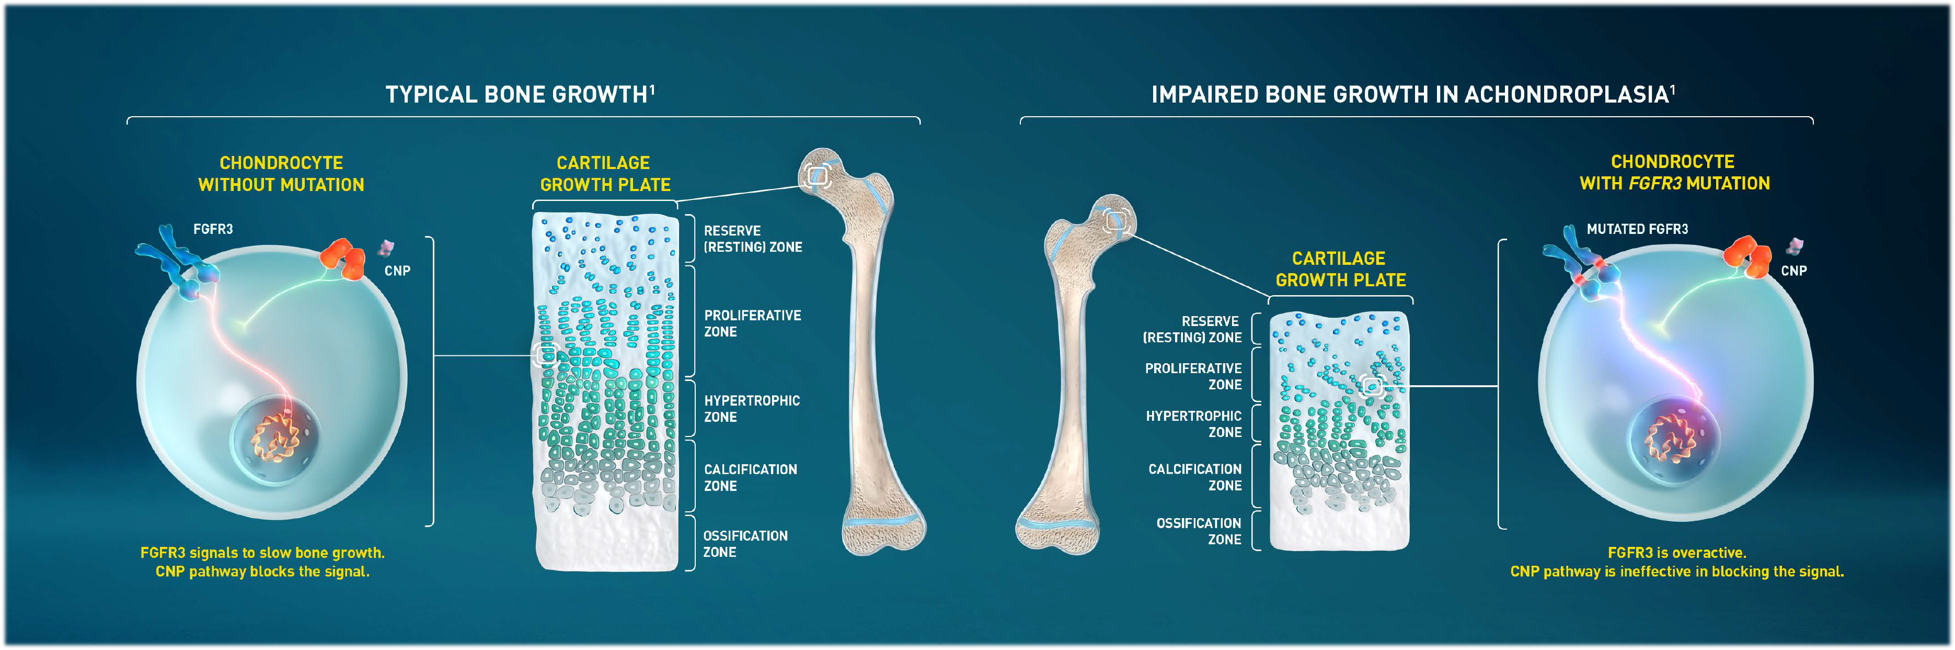 Image: Normal Bone Growth vs. Bone Growth with Achondroplasia